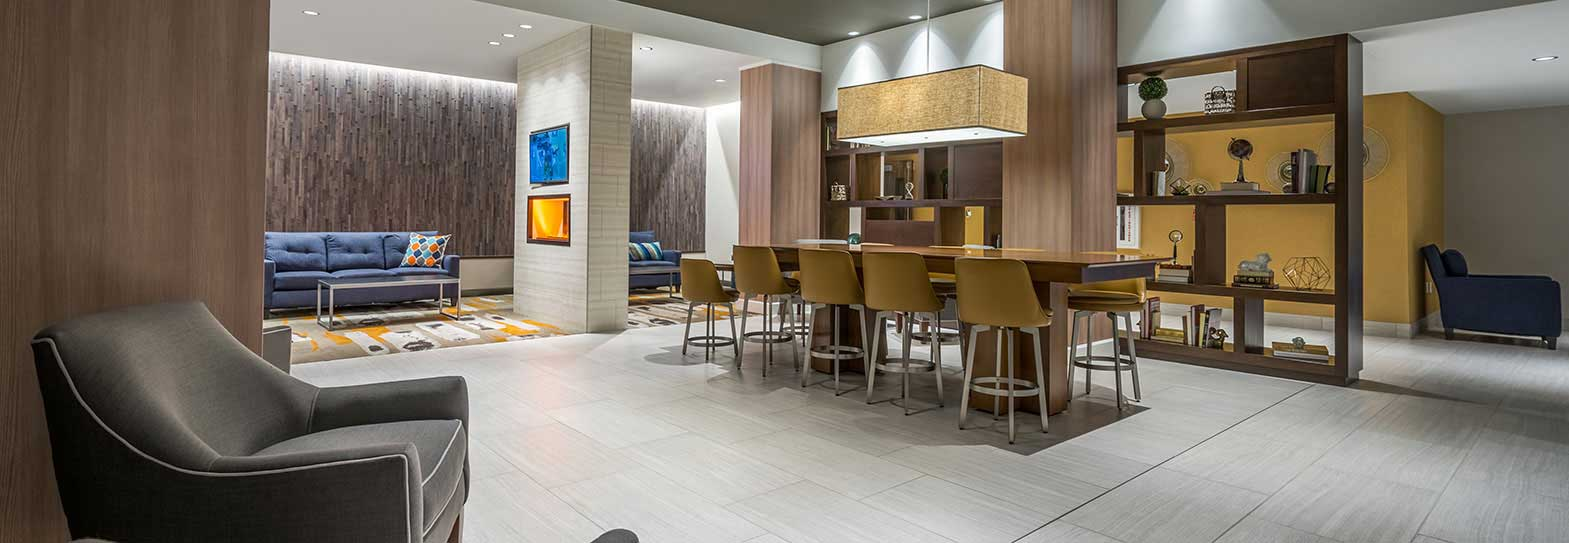 Crowne Plaza Dulles Airport Hotel Near DC